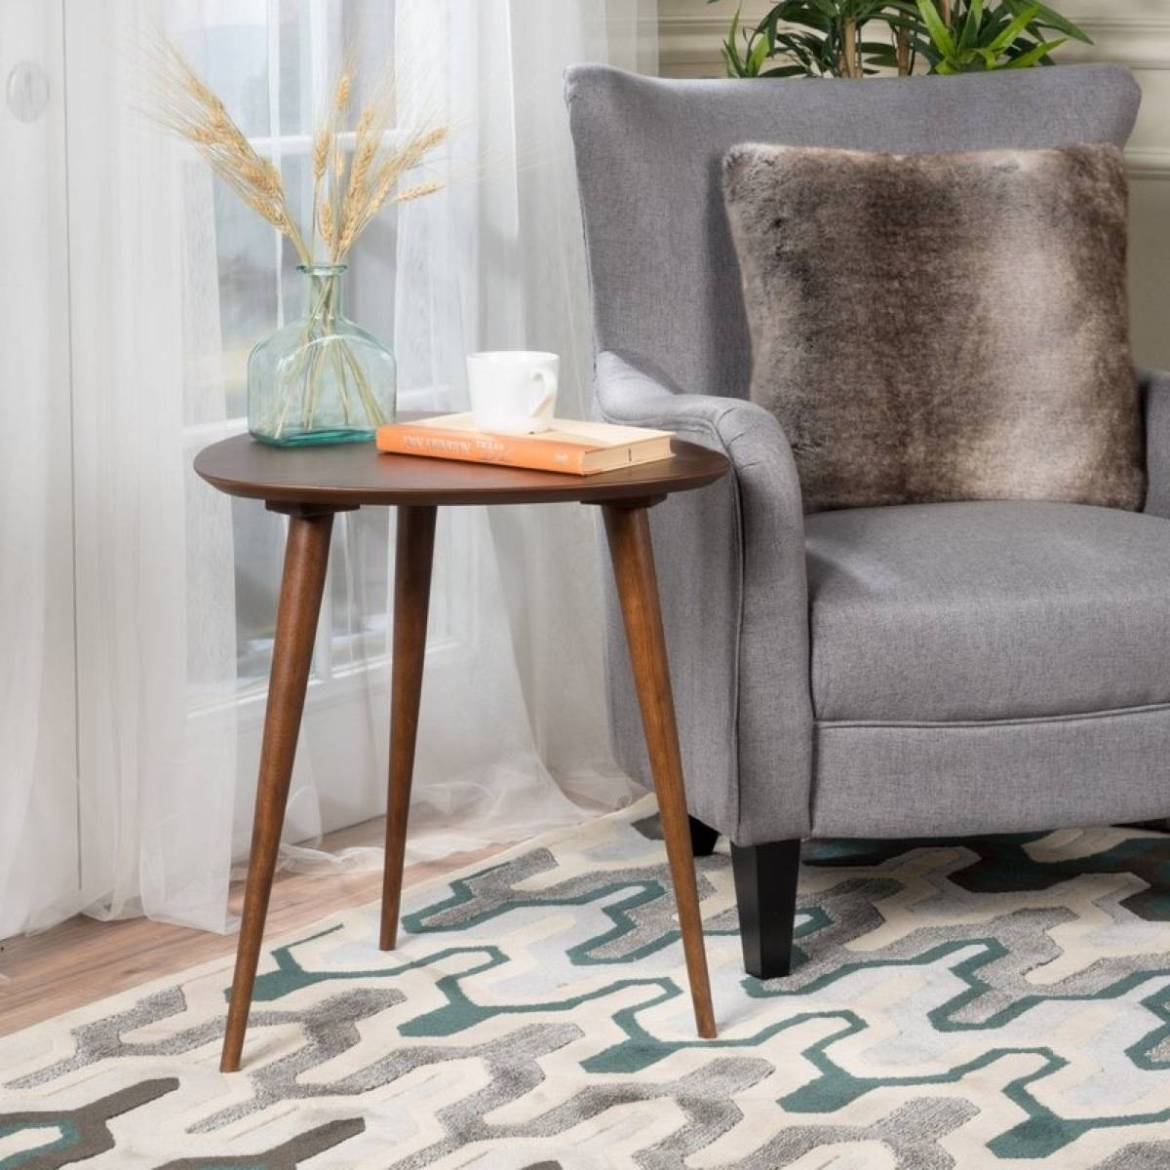 Martina end table from Wayfair